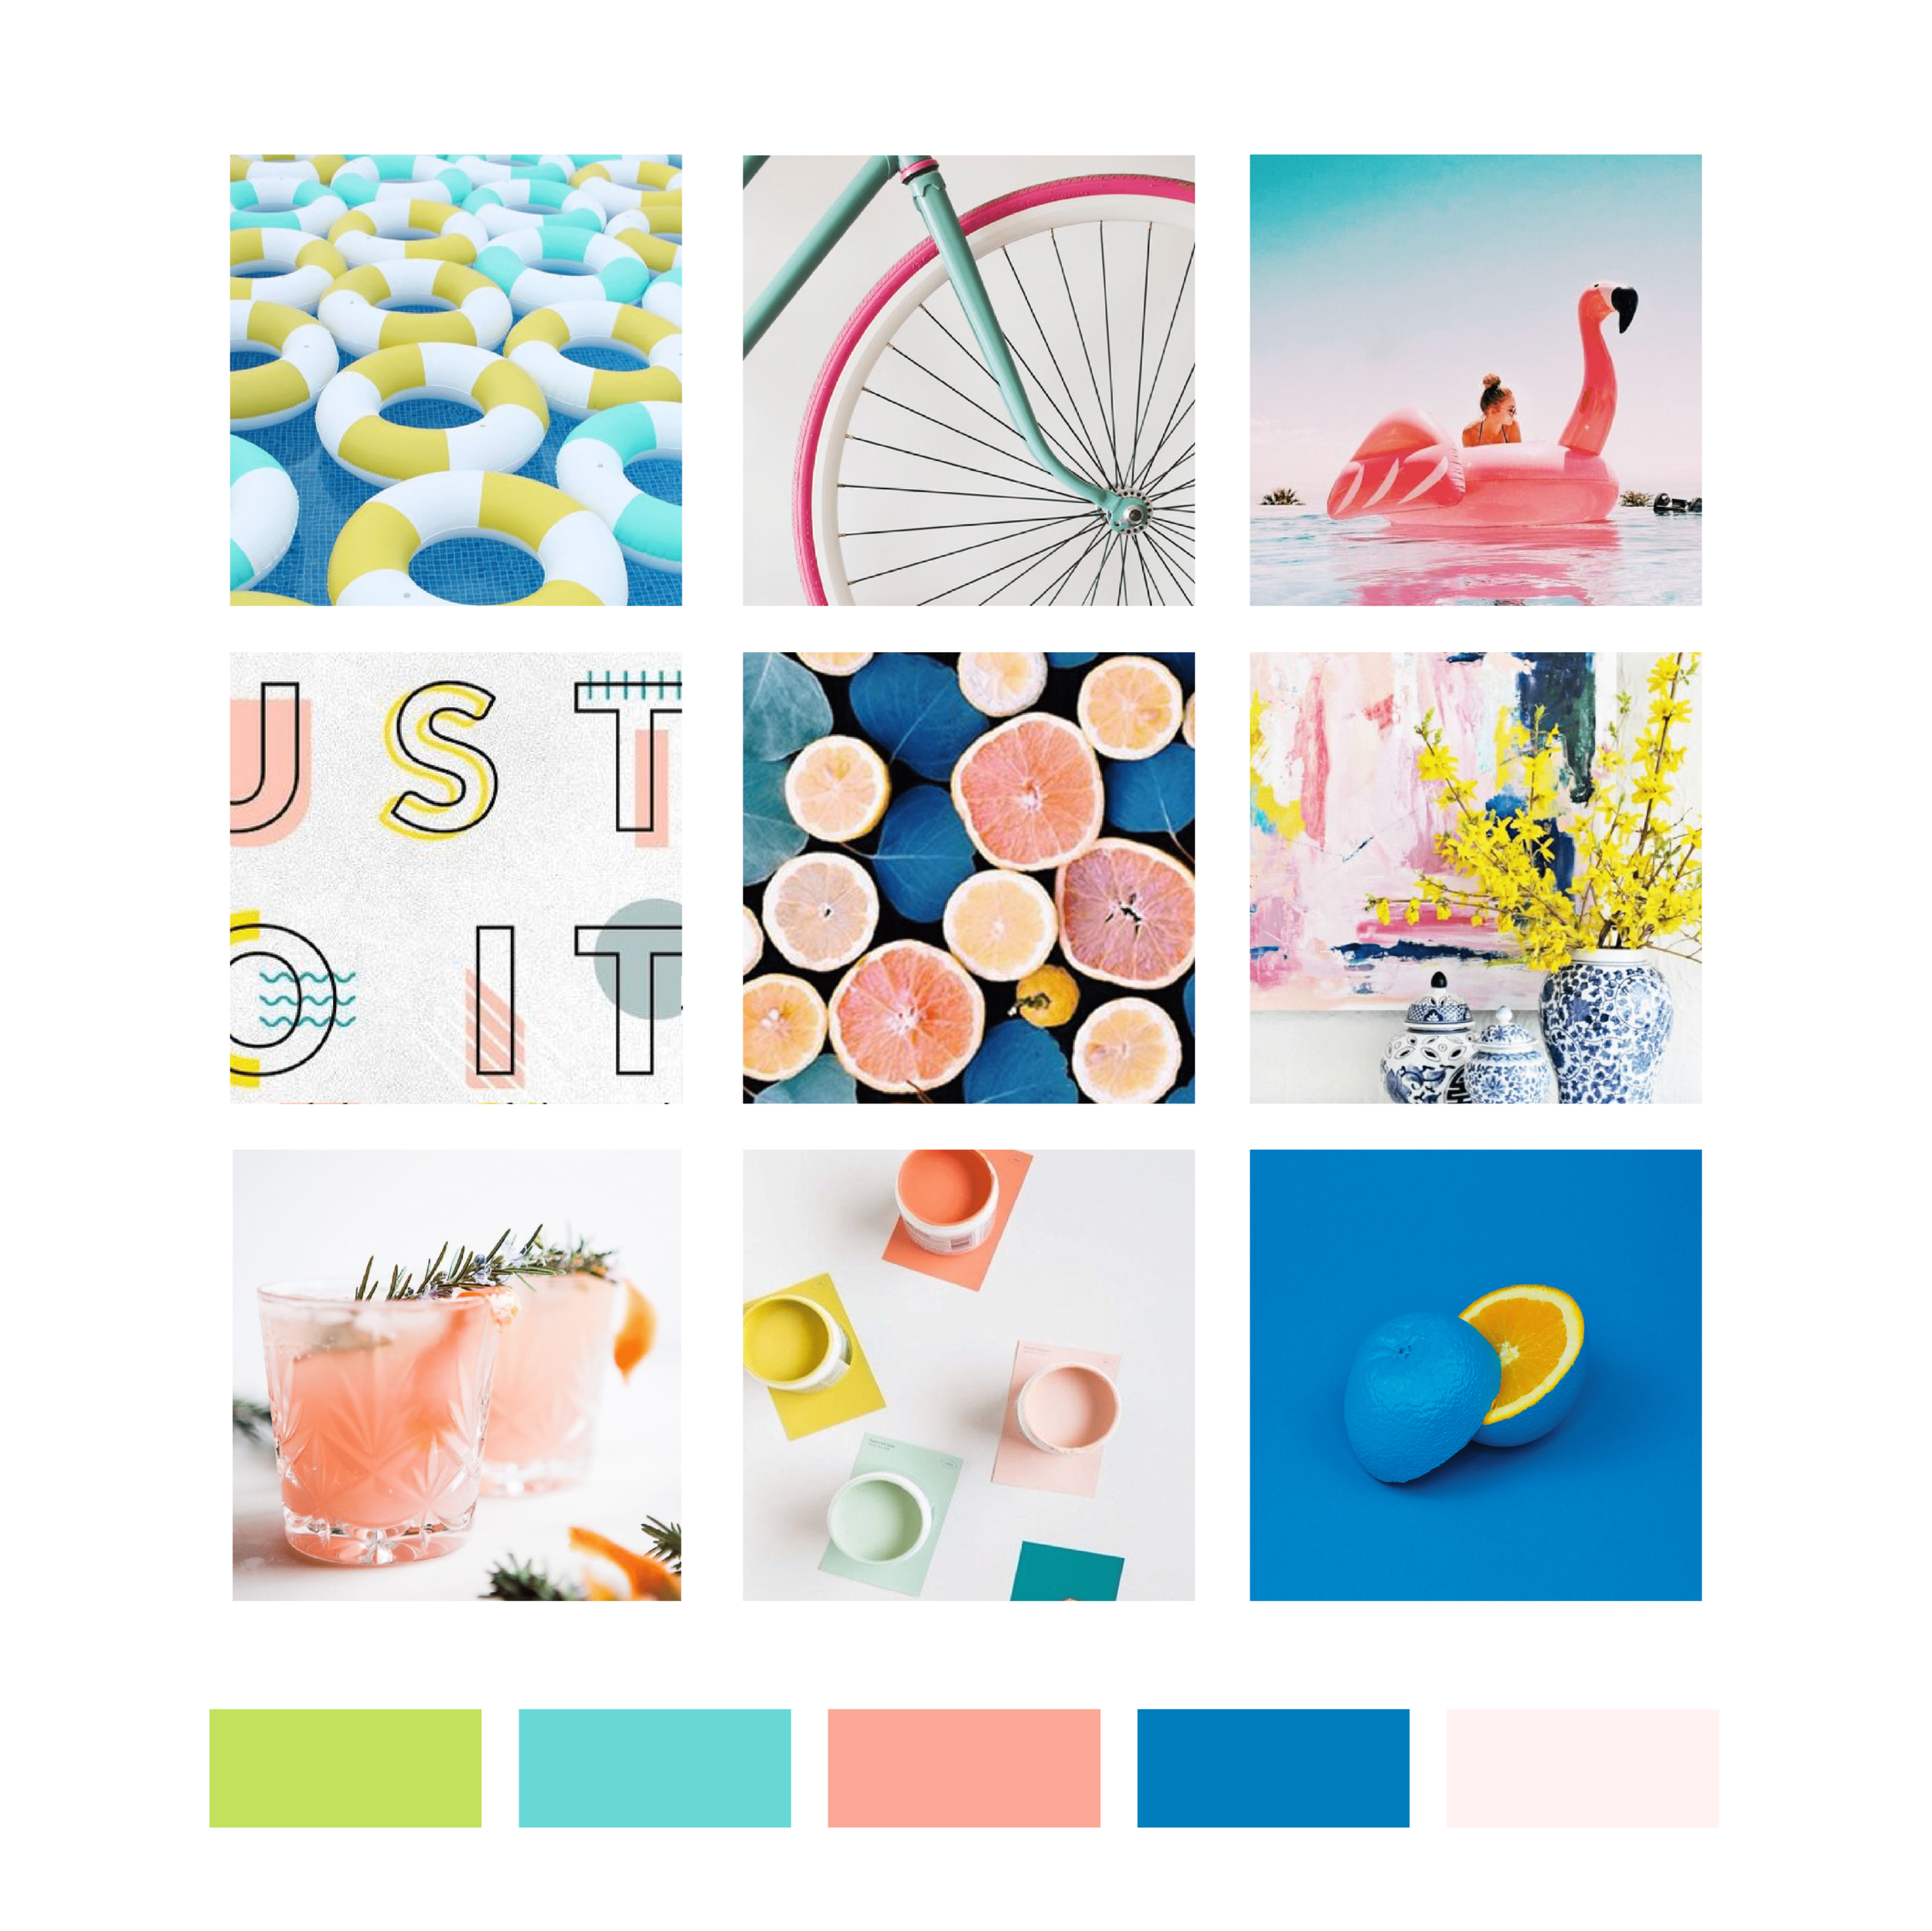 Buoyant Marketing Inbound Marketing Agency Florida Mood Board by Kindly by Kelsea